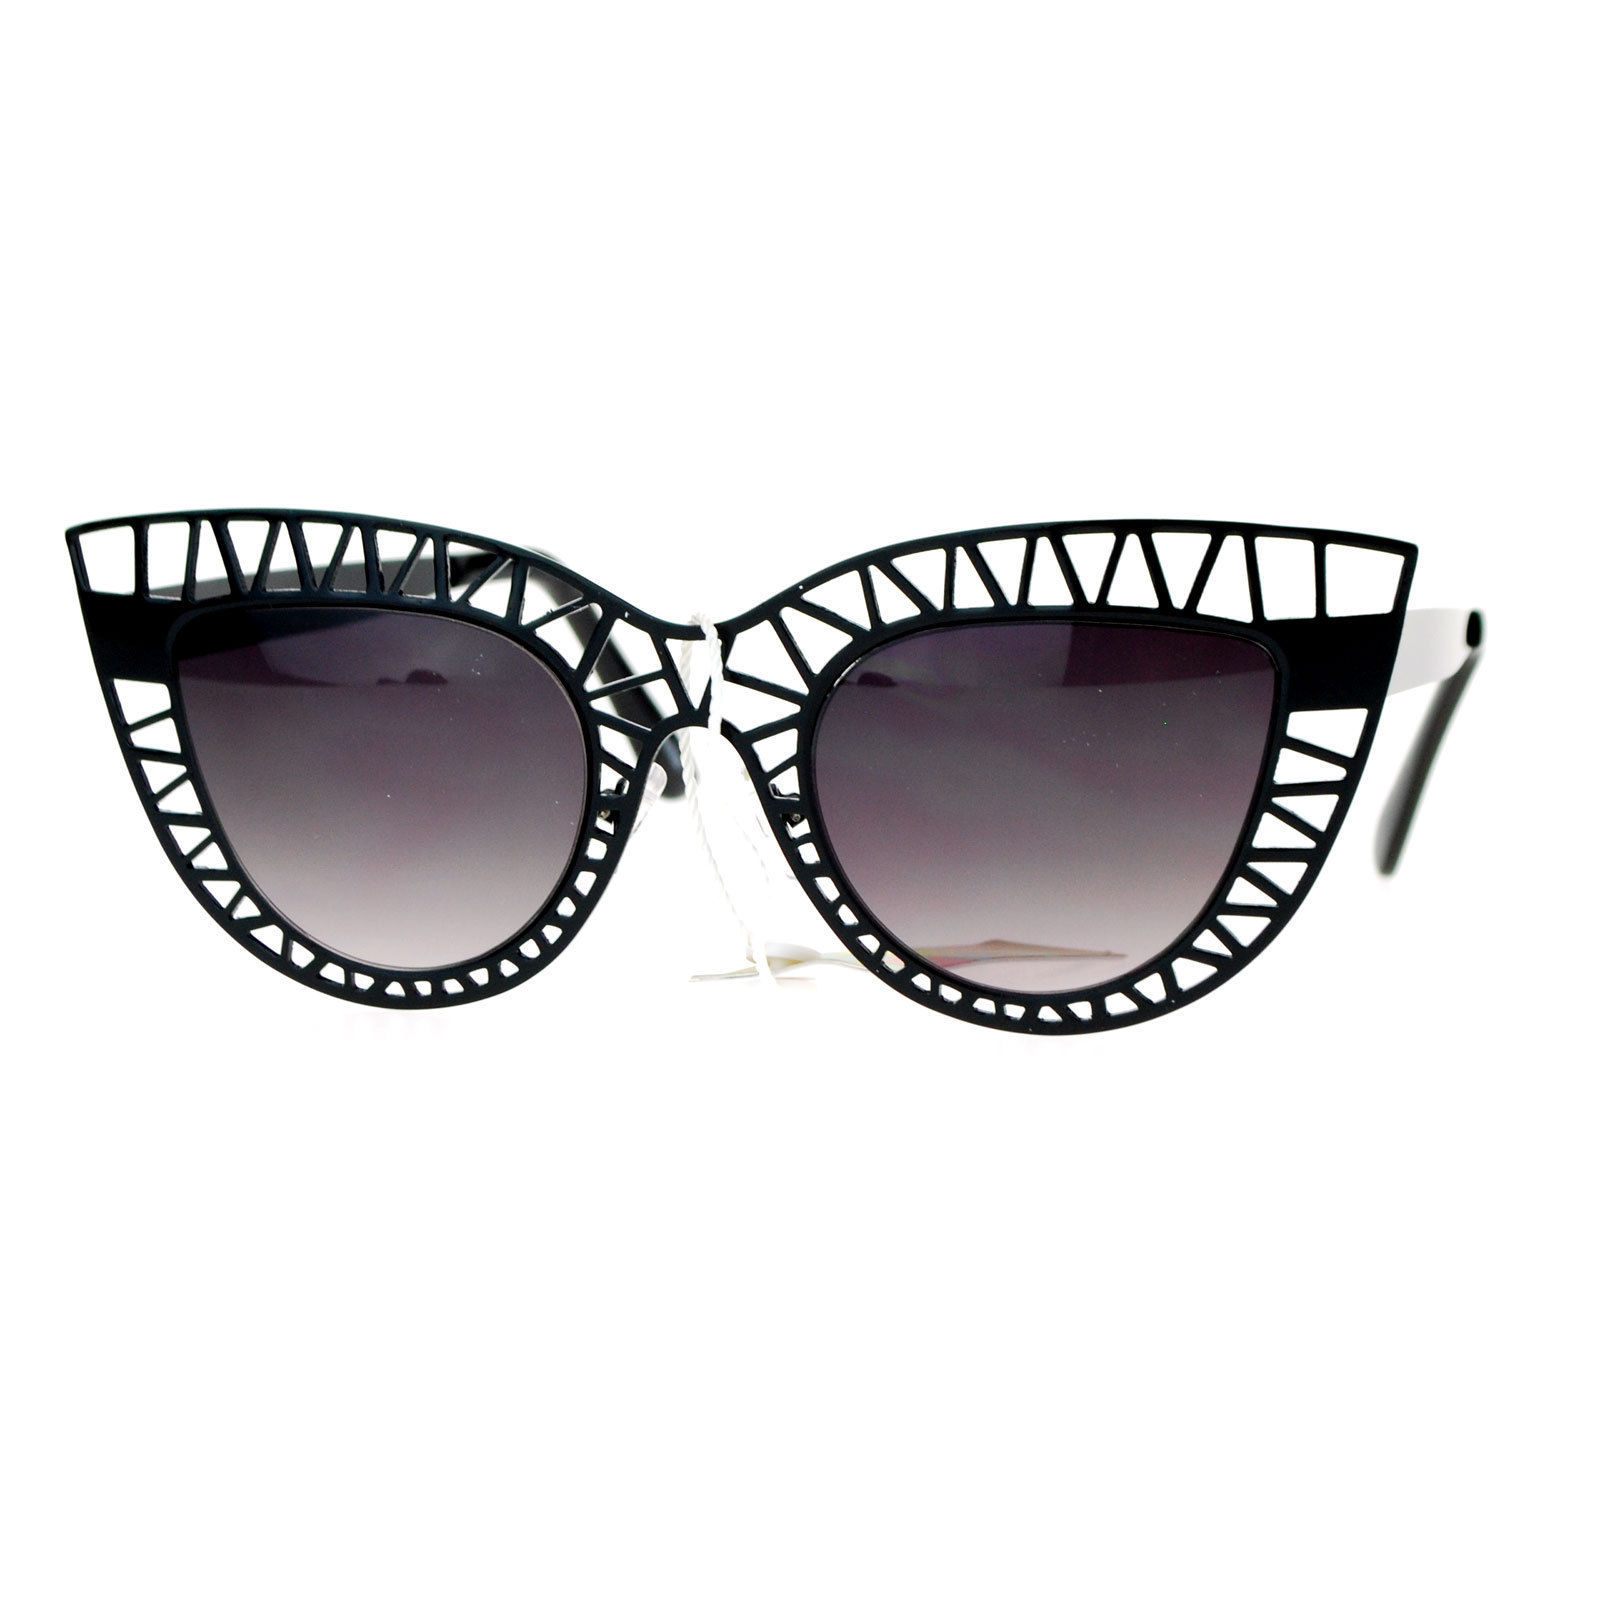 Wire Frame Glasses Trend : SA106 Womens Lattice Wire Frame Unique Cat Eye Runway ...